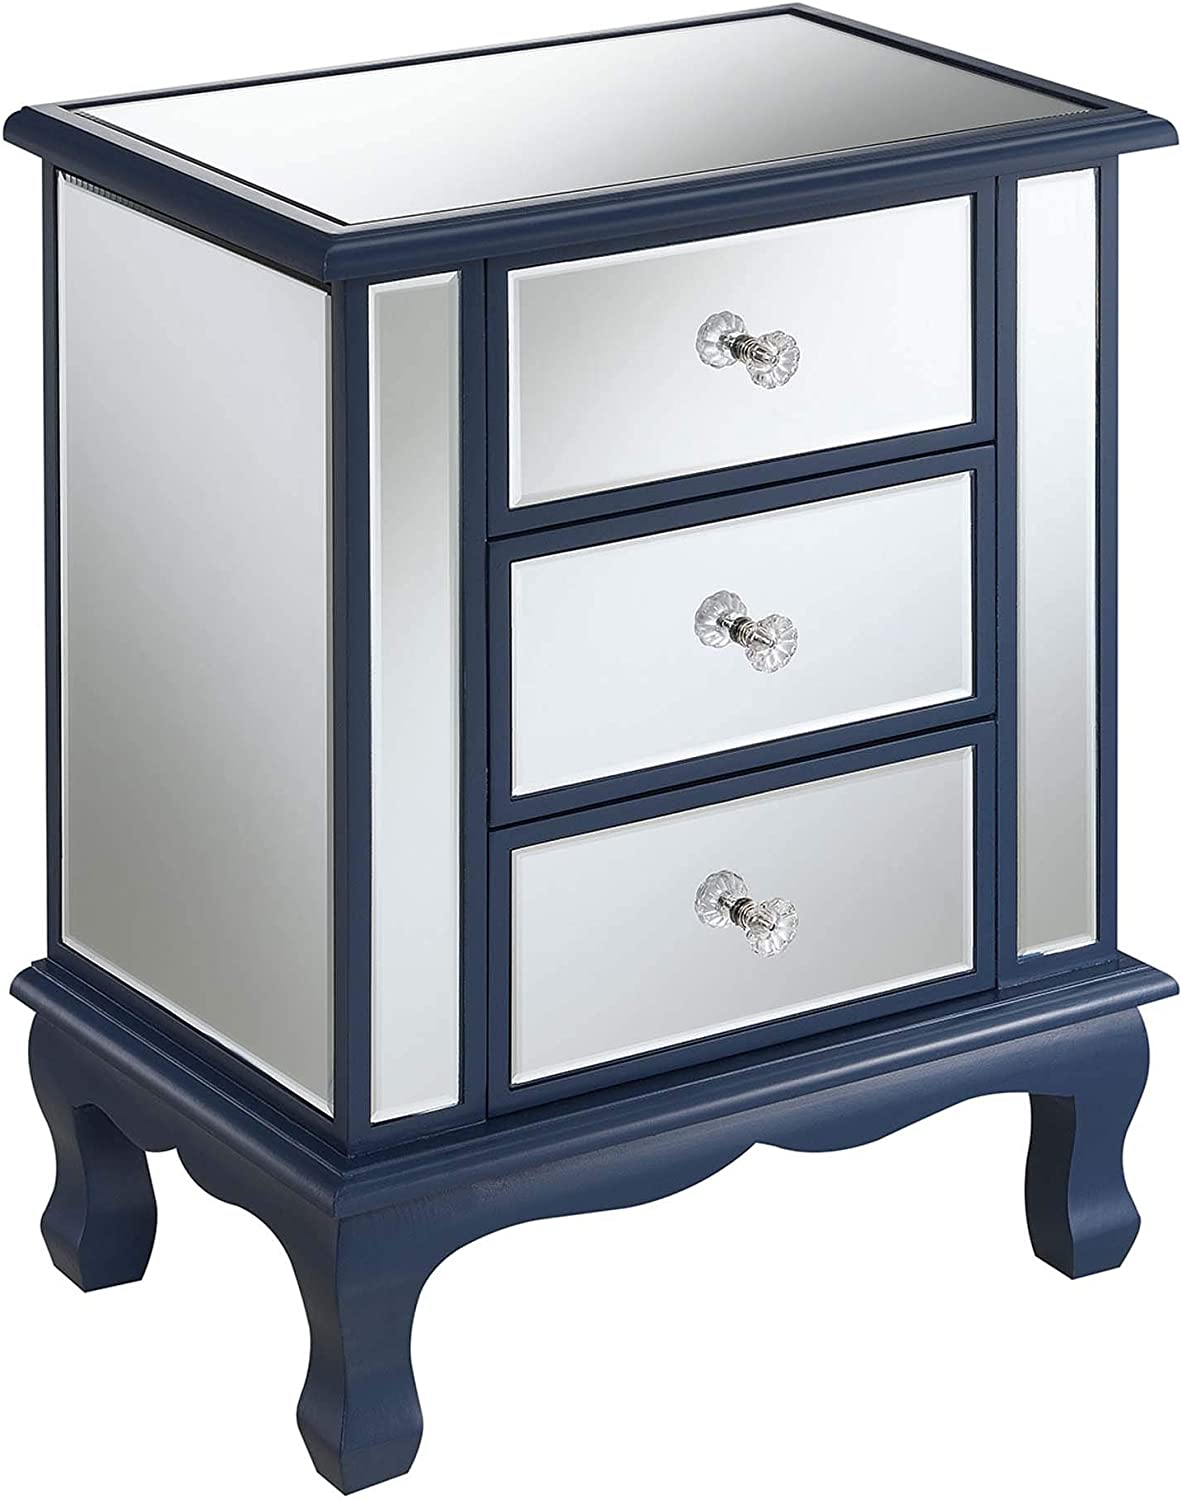 Convenience Concepts Gold Coast Vineyard 3 Drawer Mirrored End Table, Cobalt Blue / Mirror